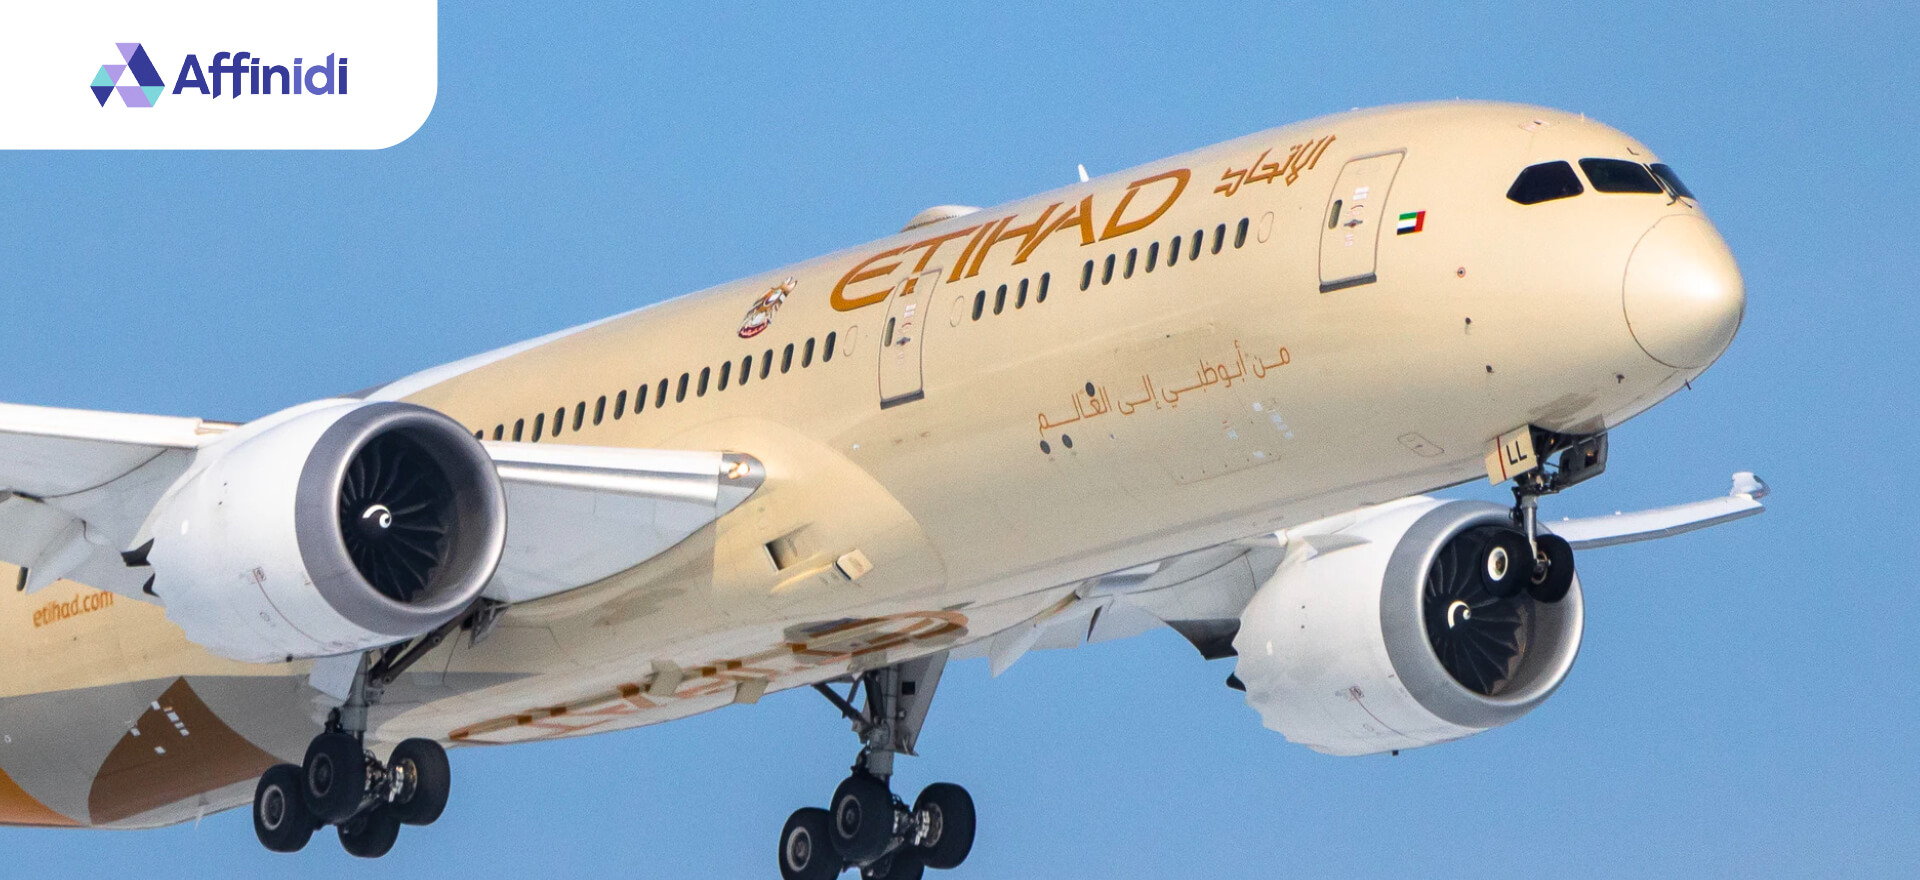 Affinidi partners with Etihad Airways to advance the aviation industry's ability to process COVID-19 test results more efficiently